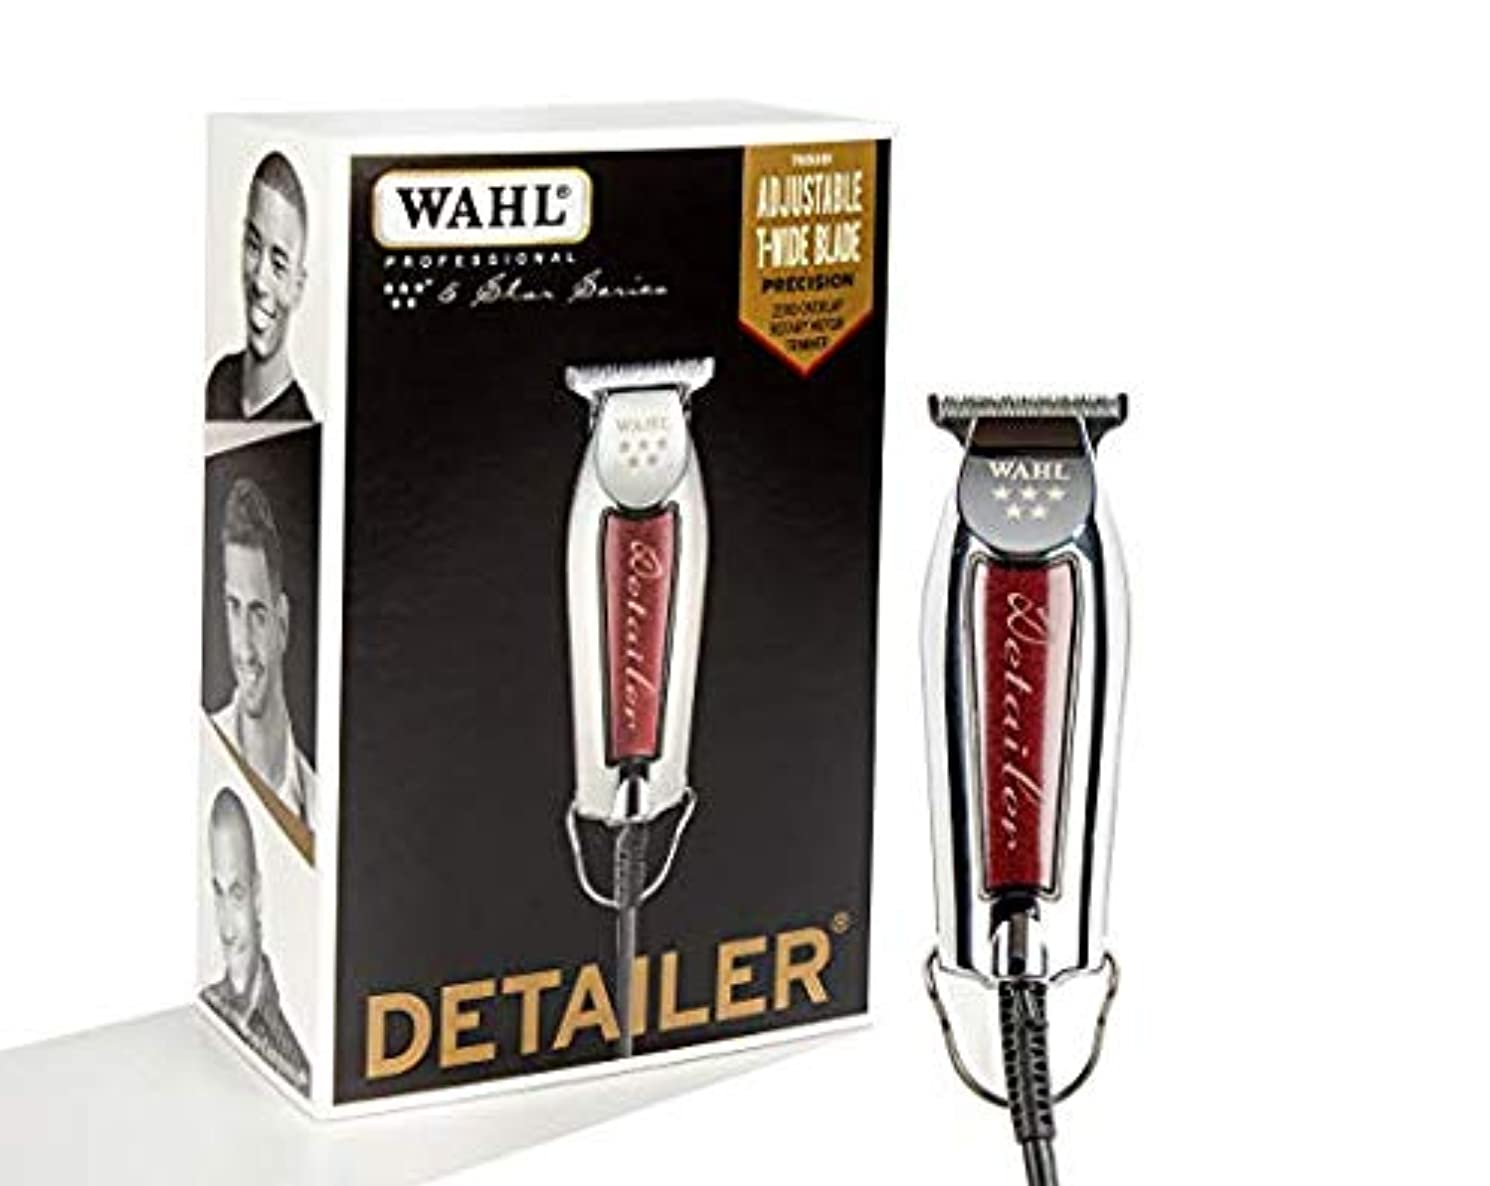 スマート壁長くする[Wahl ] [Professional Series Detailer #8081 - With Adjustable T-Blade, 3 Trimming Guides (1/16 inch - 1/4 inch...